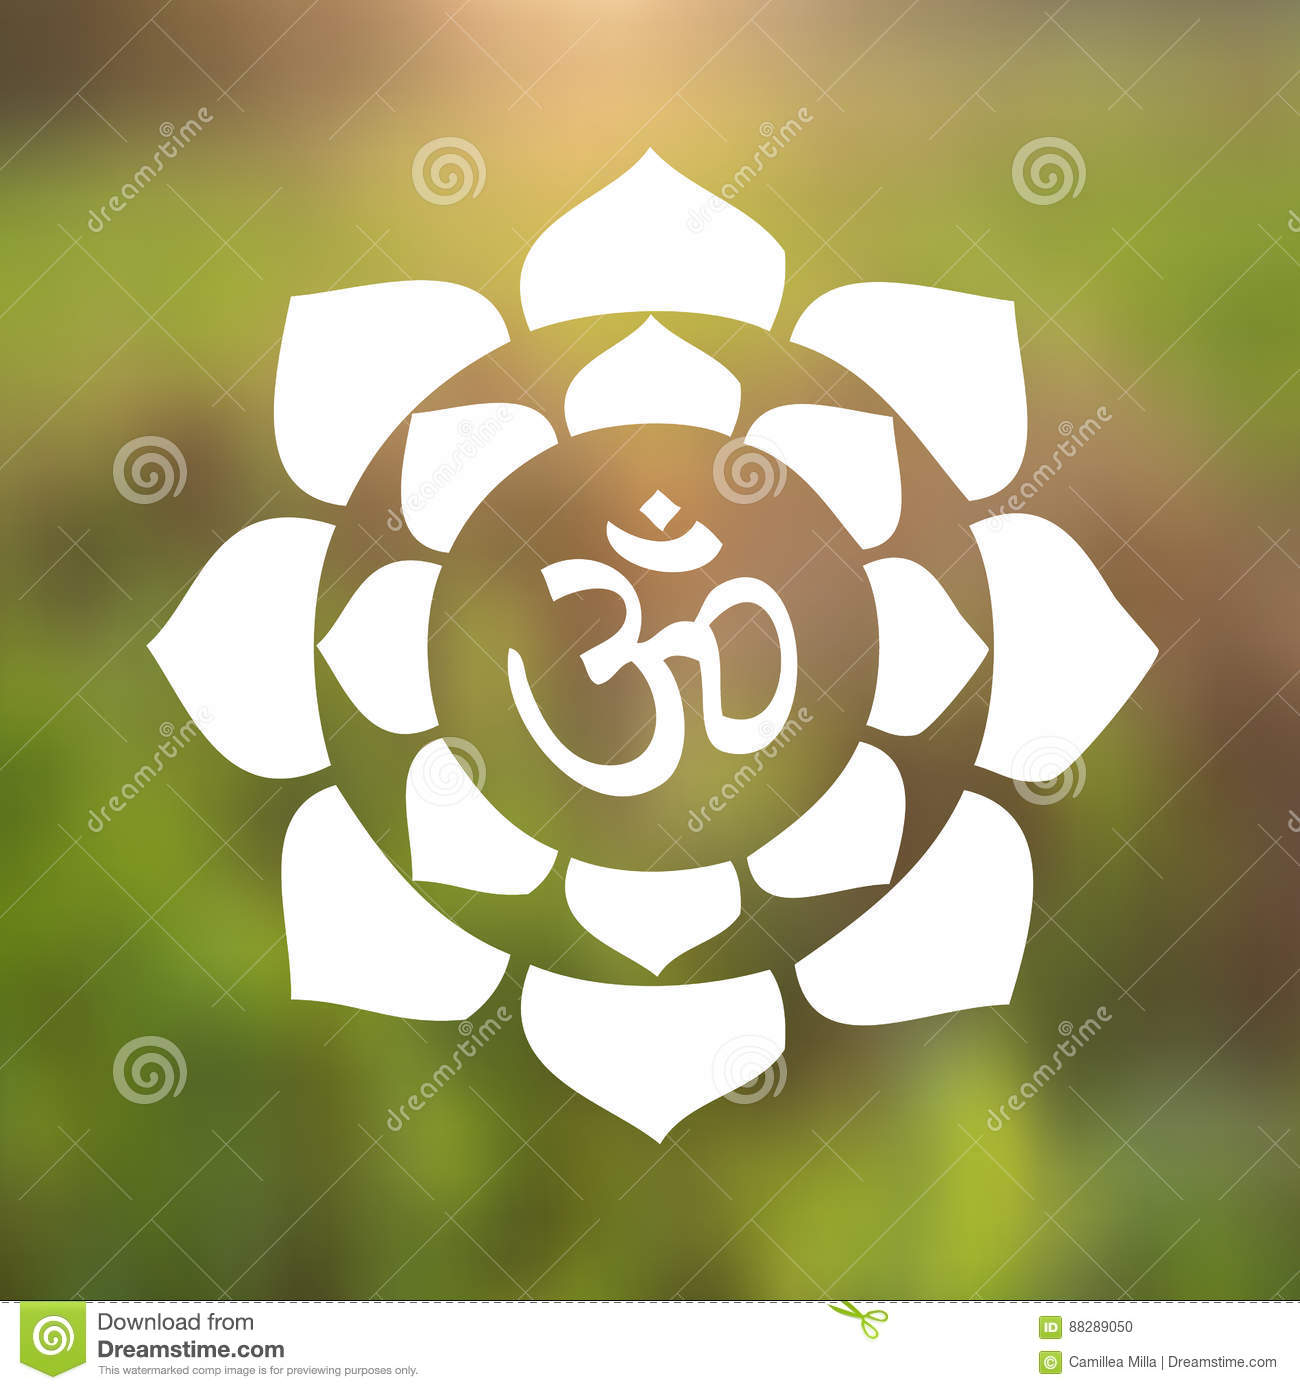 vector om symbol hindu in lotus flower mandala illustration stock, Beautiful flower